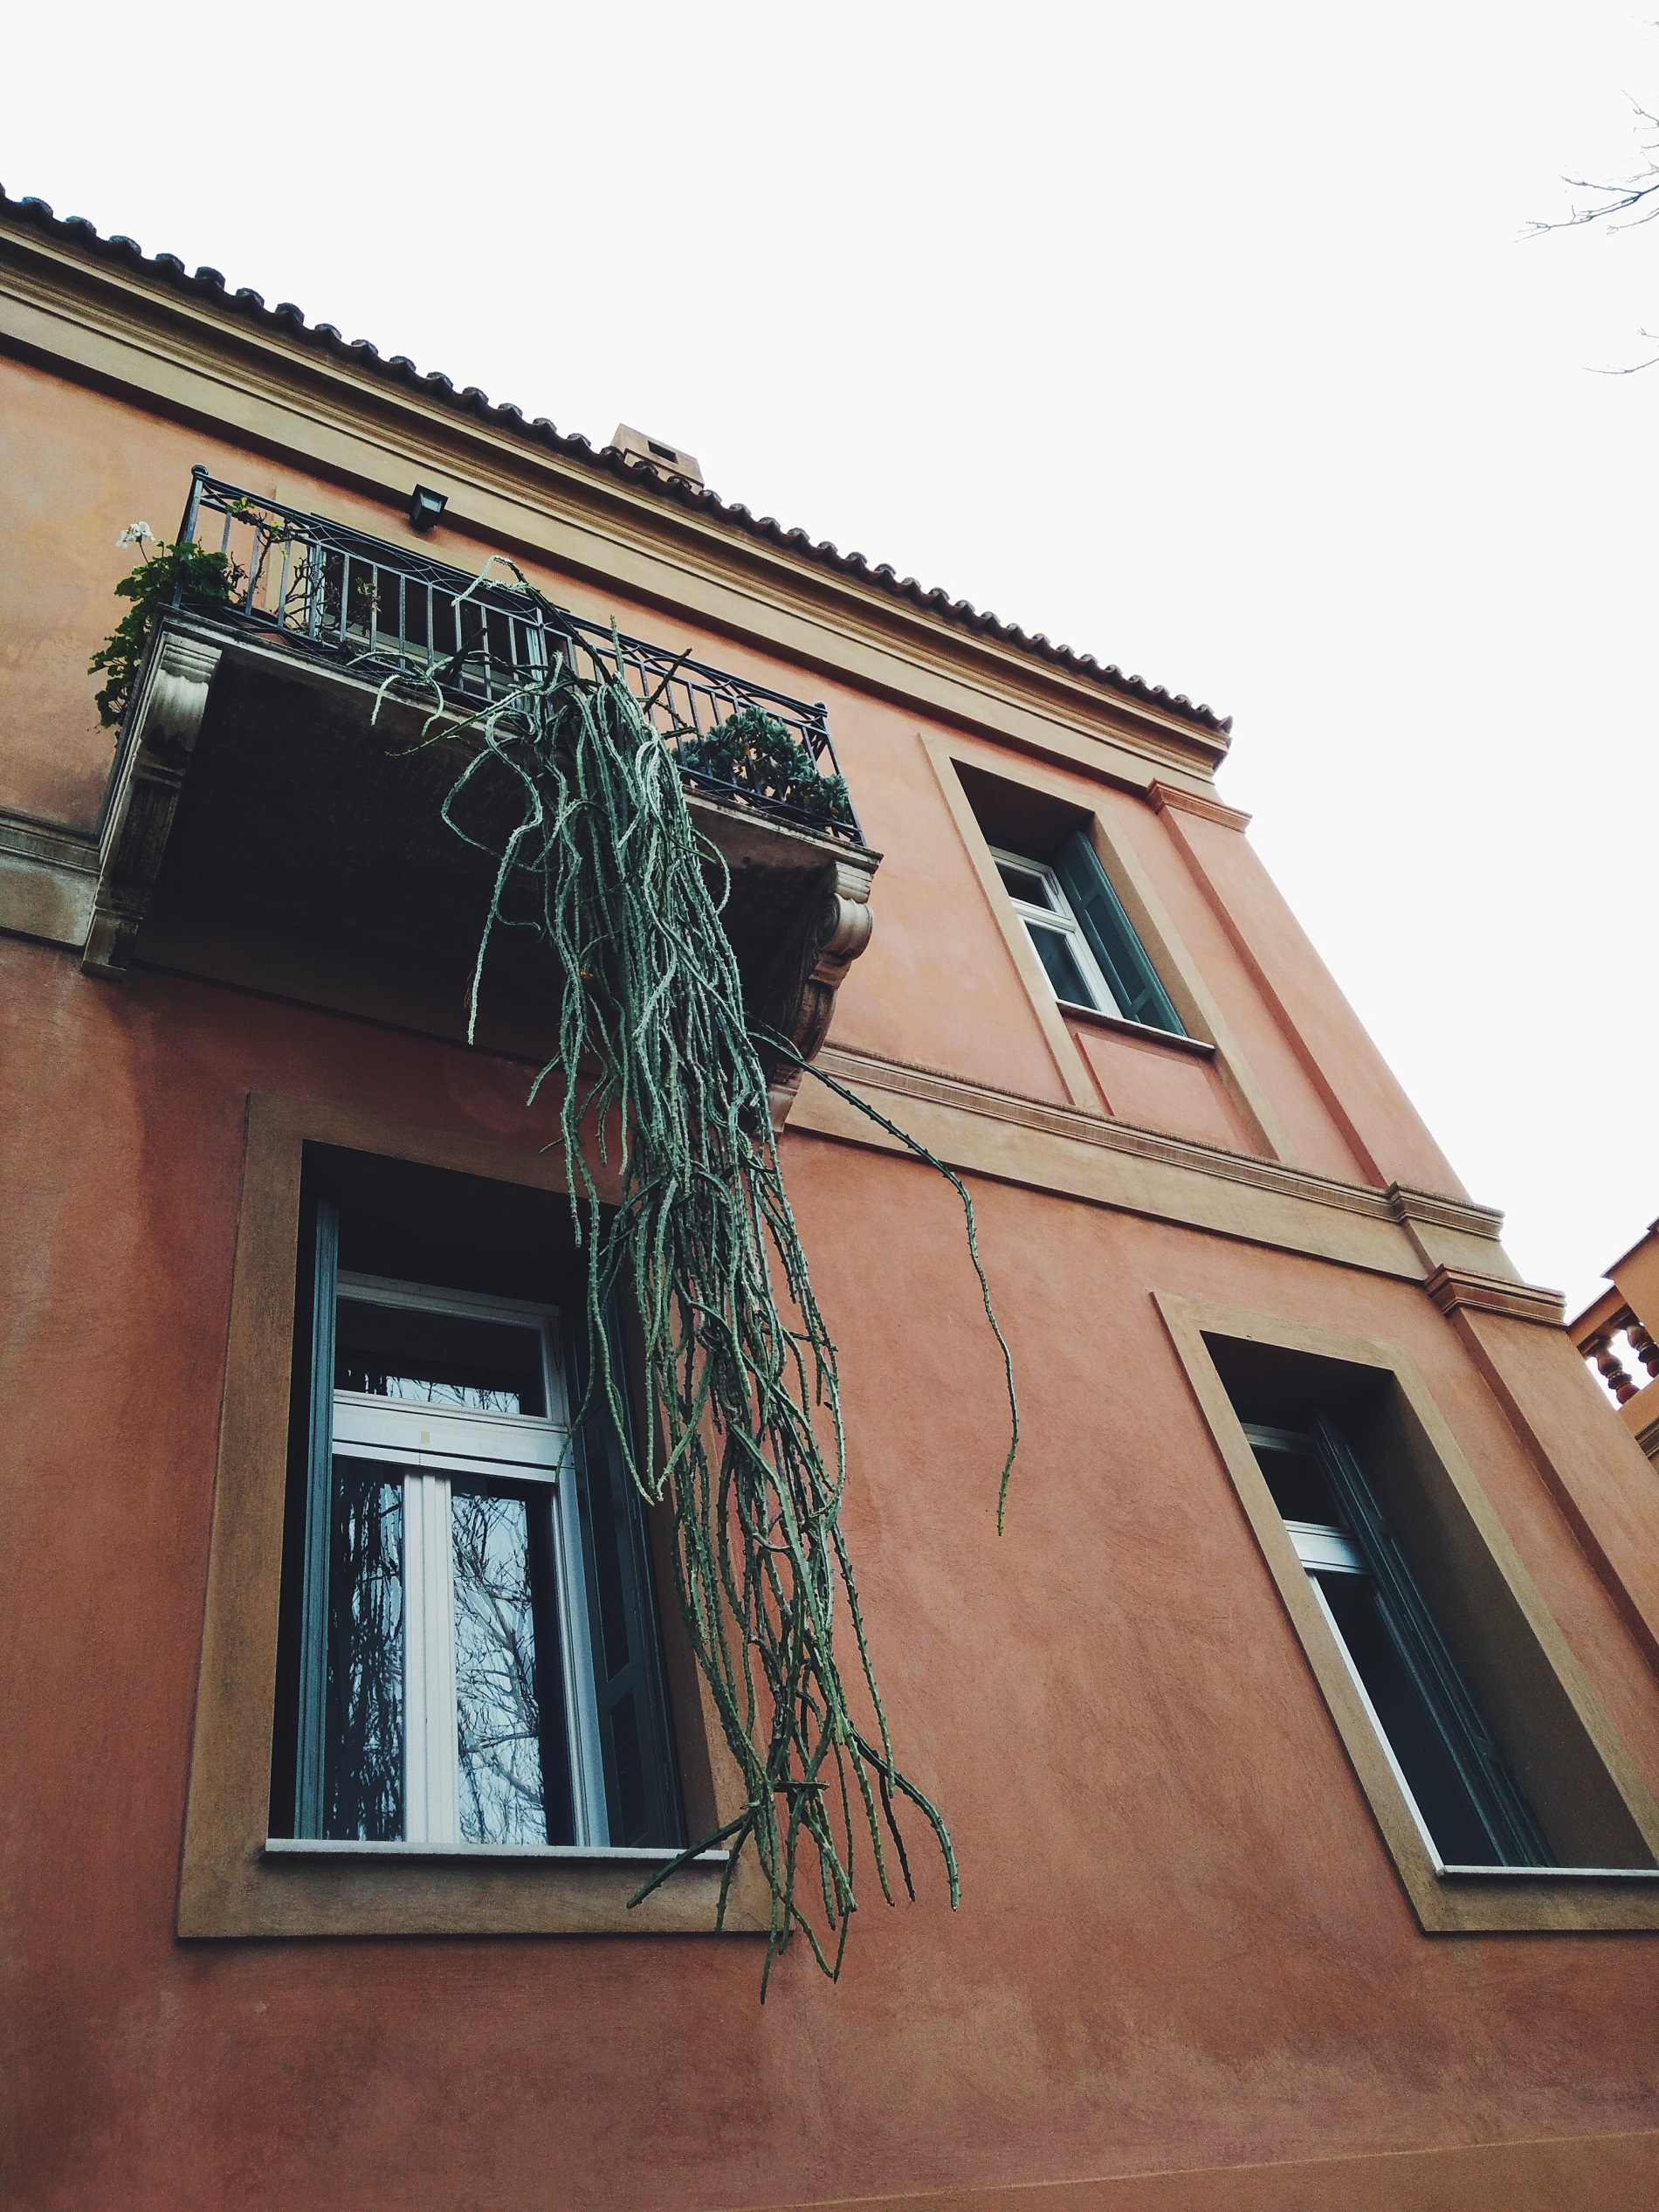 Picturesque building with an unusual hanging plant